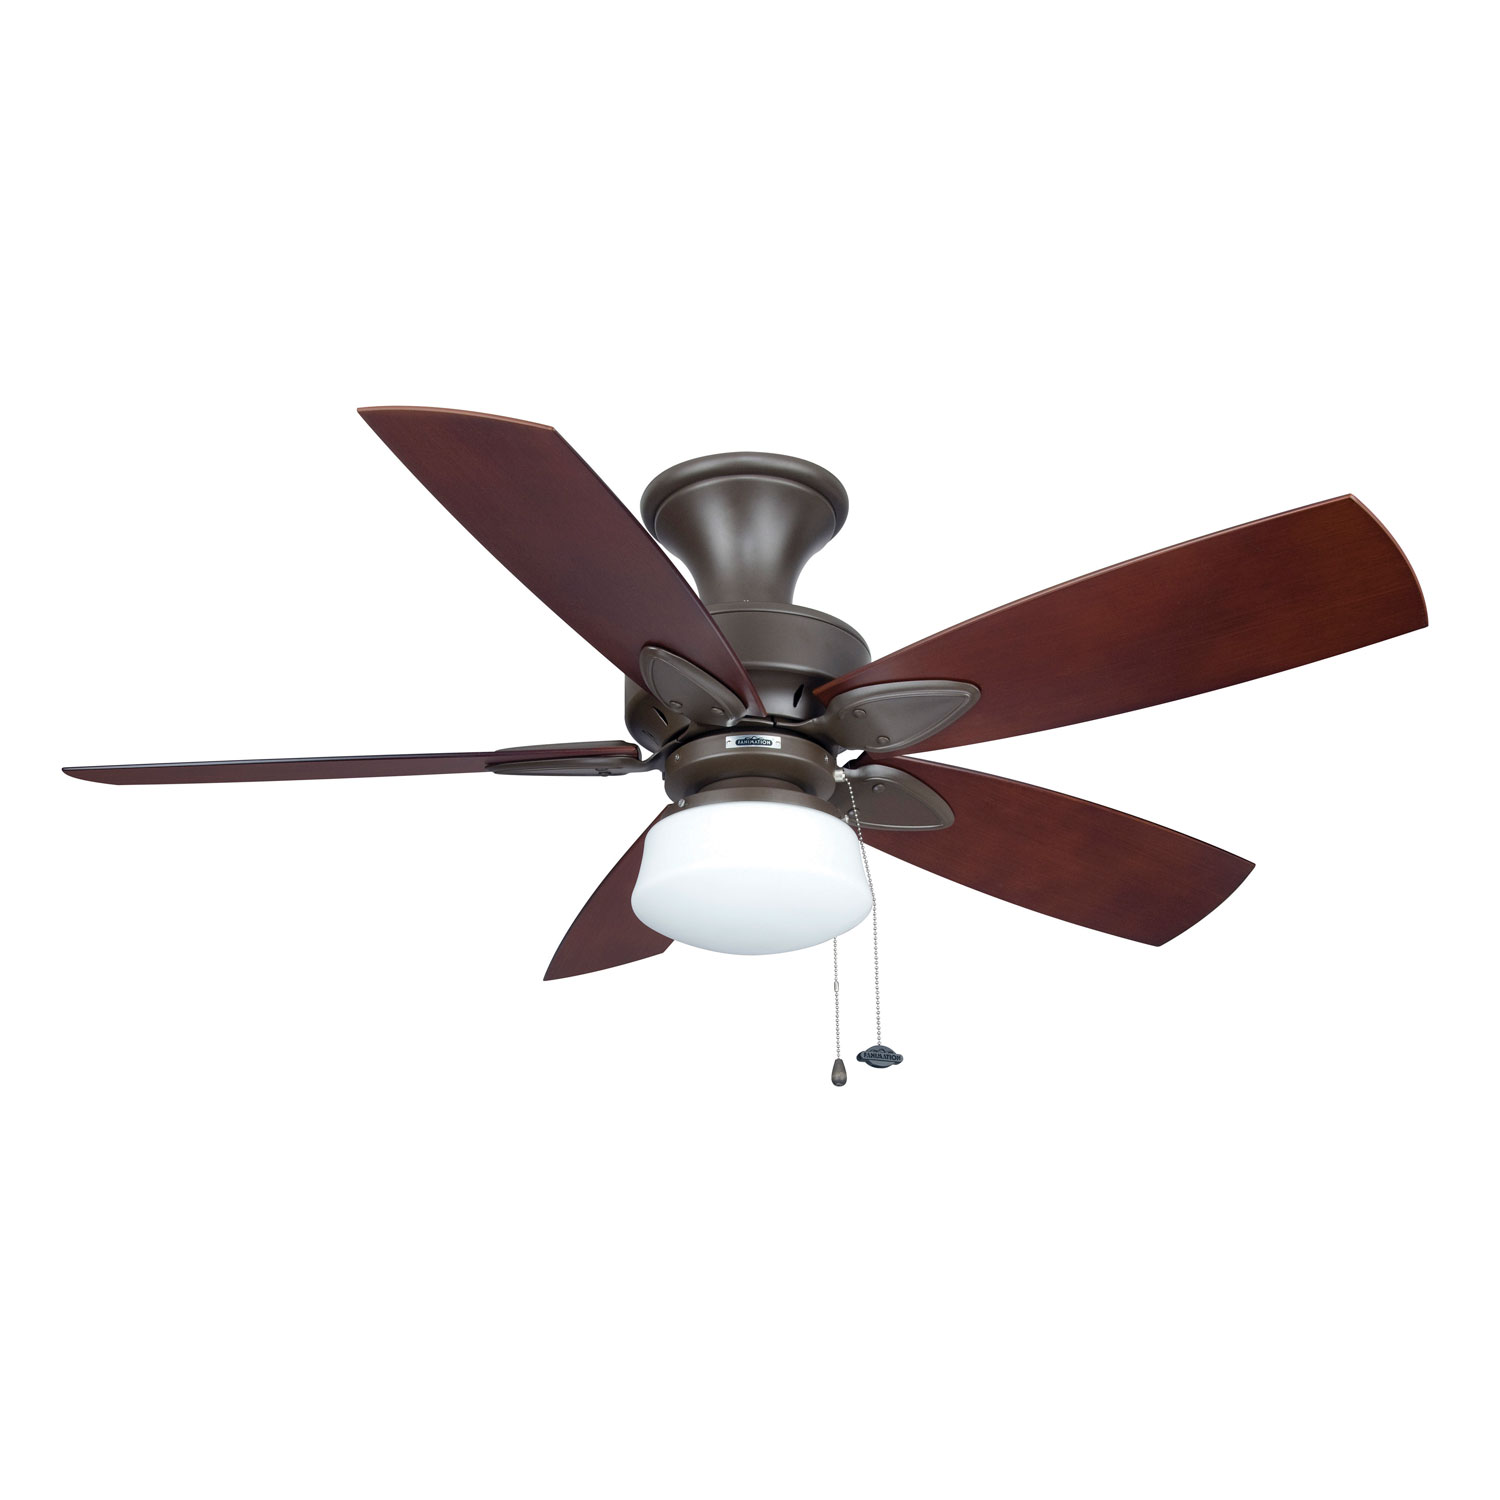 20 inch ceiling fan photo - 7